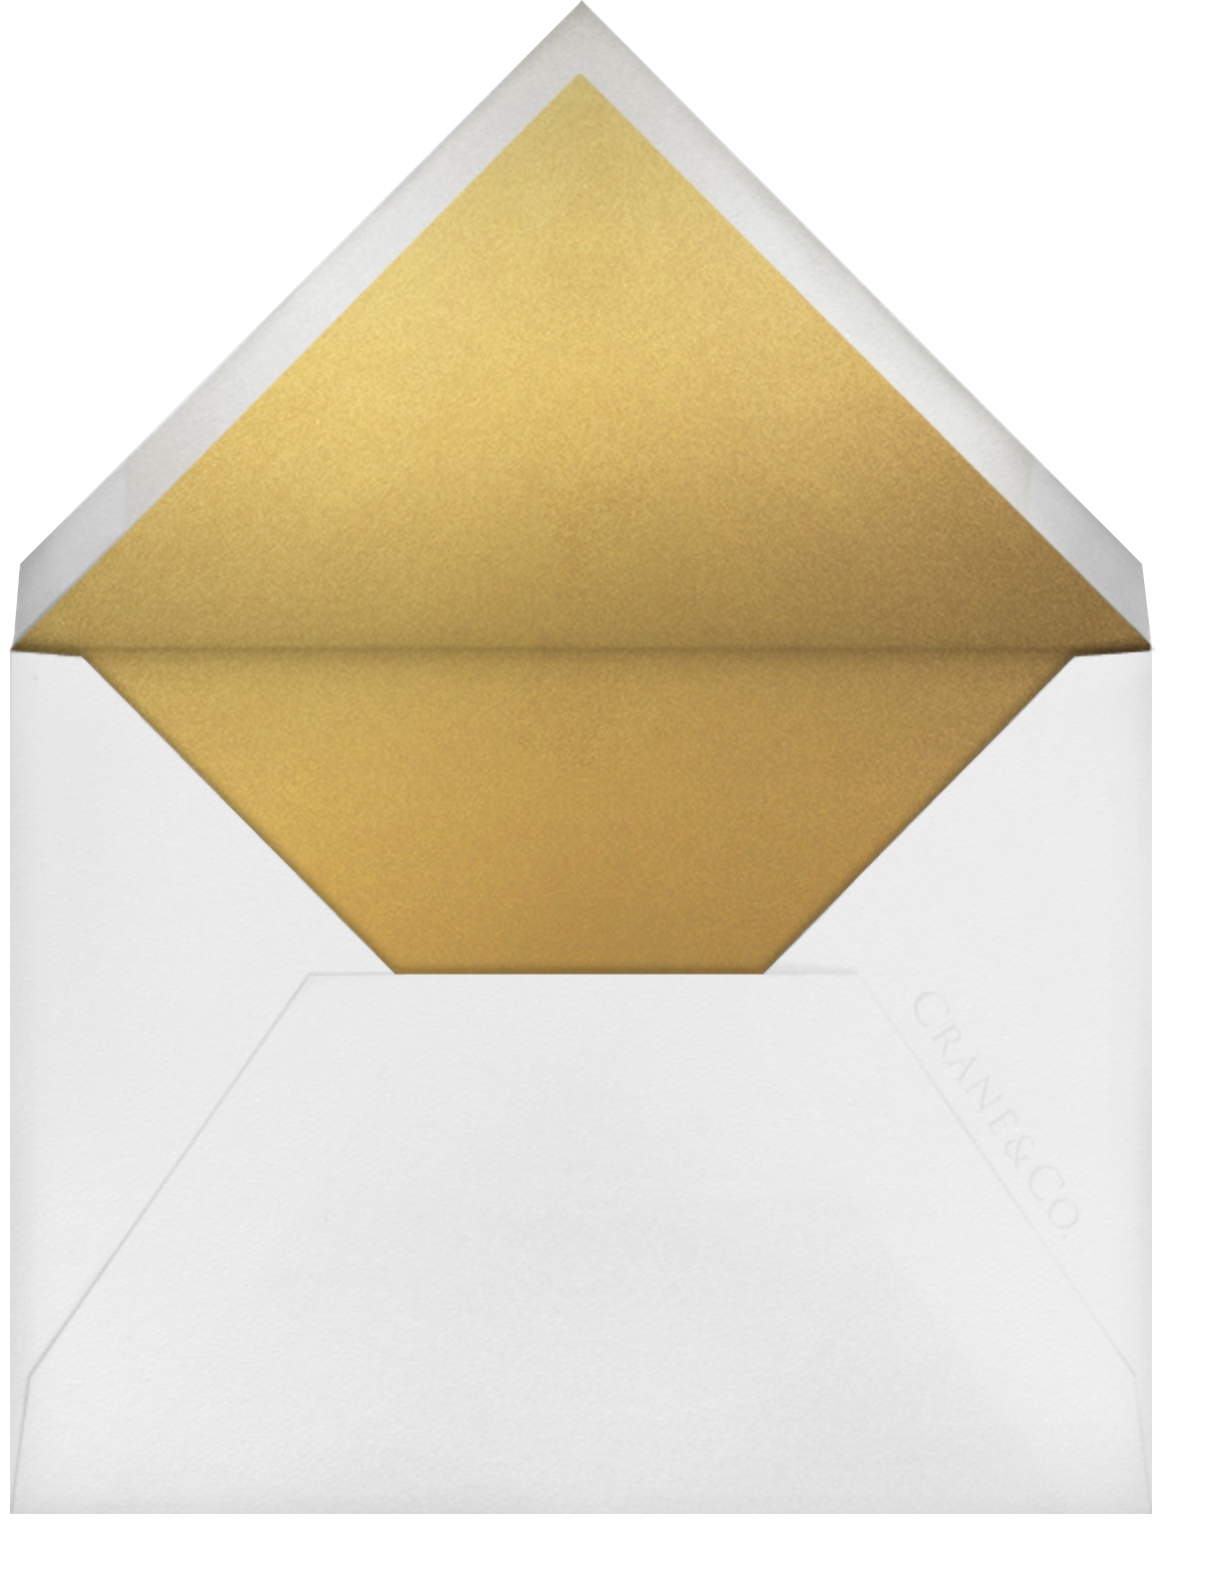 Escalier (Invitation) - Ivory and Gold - Paperless Post - Holiday party - envelope back